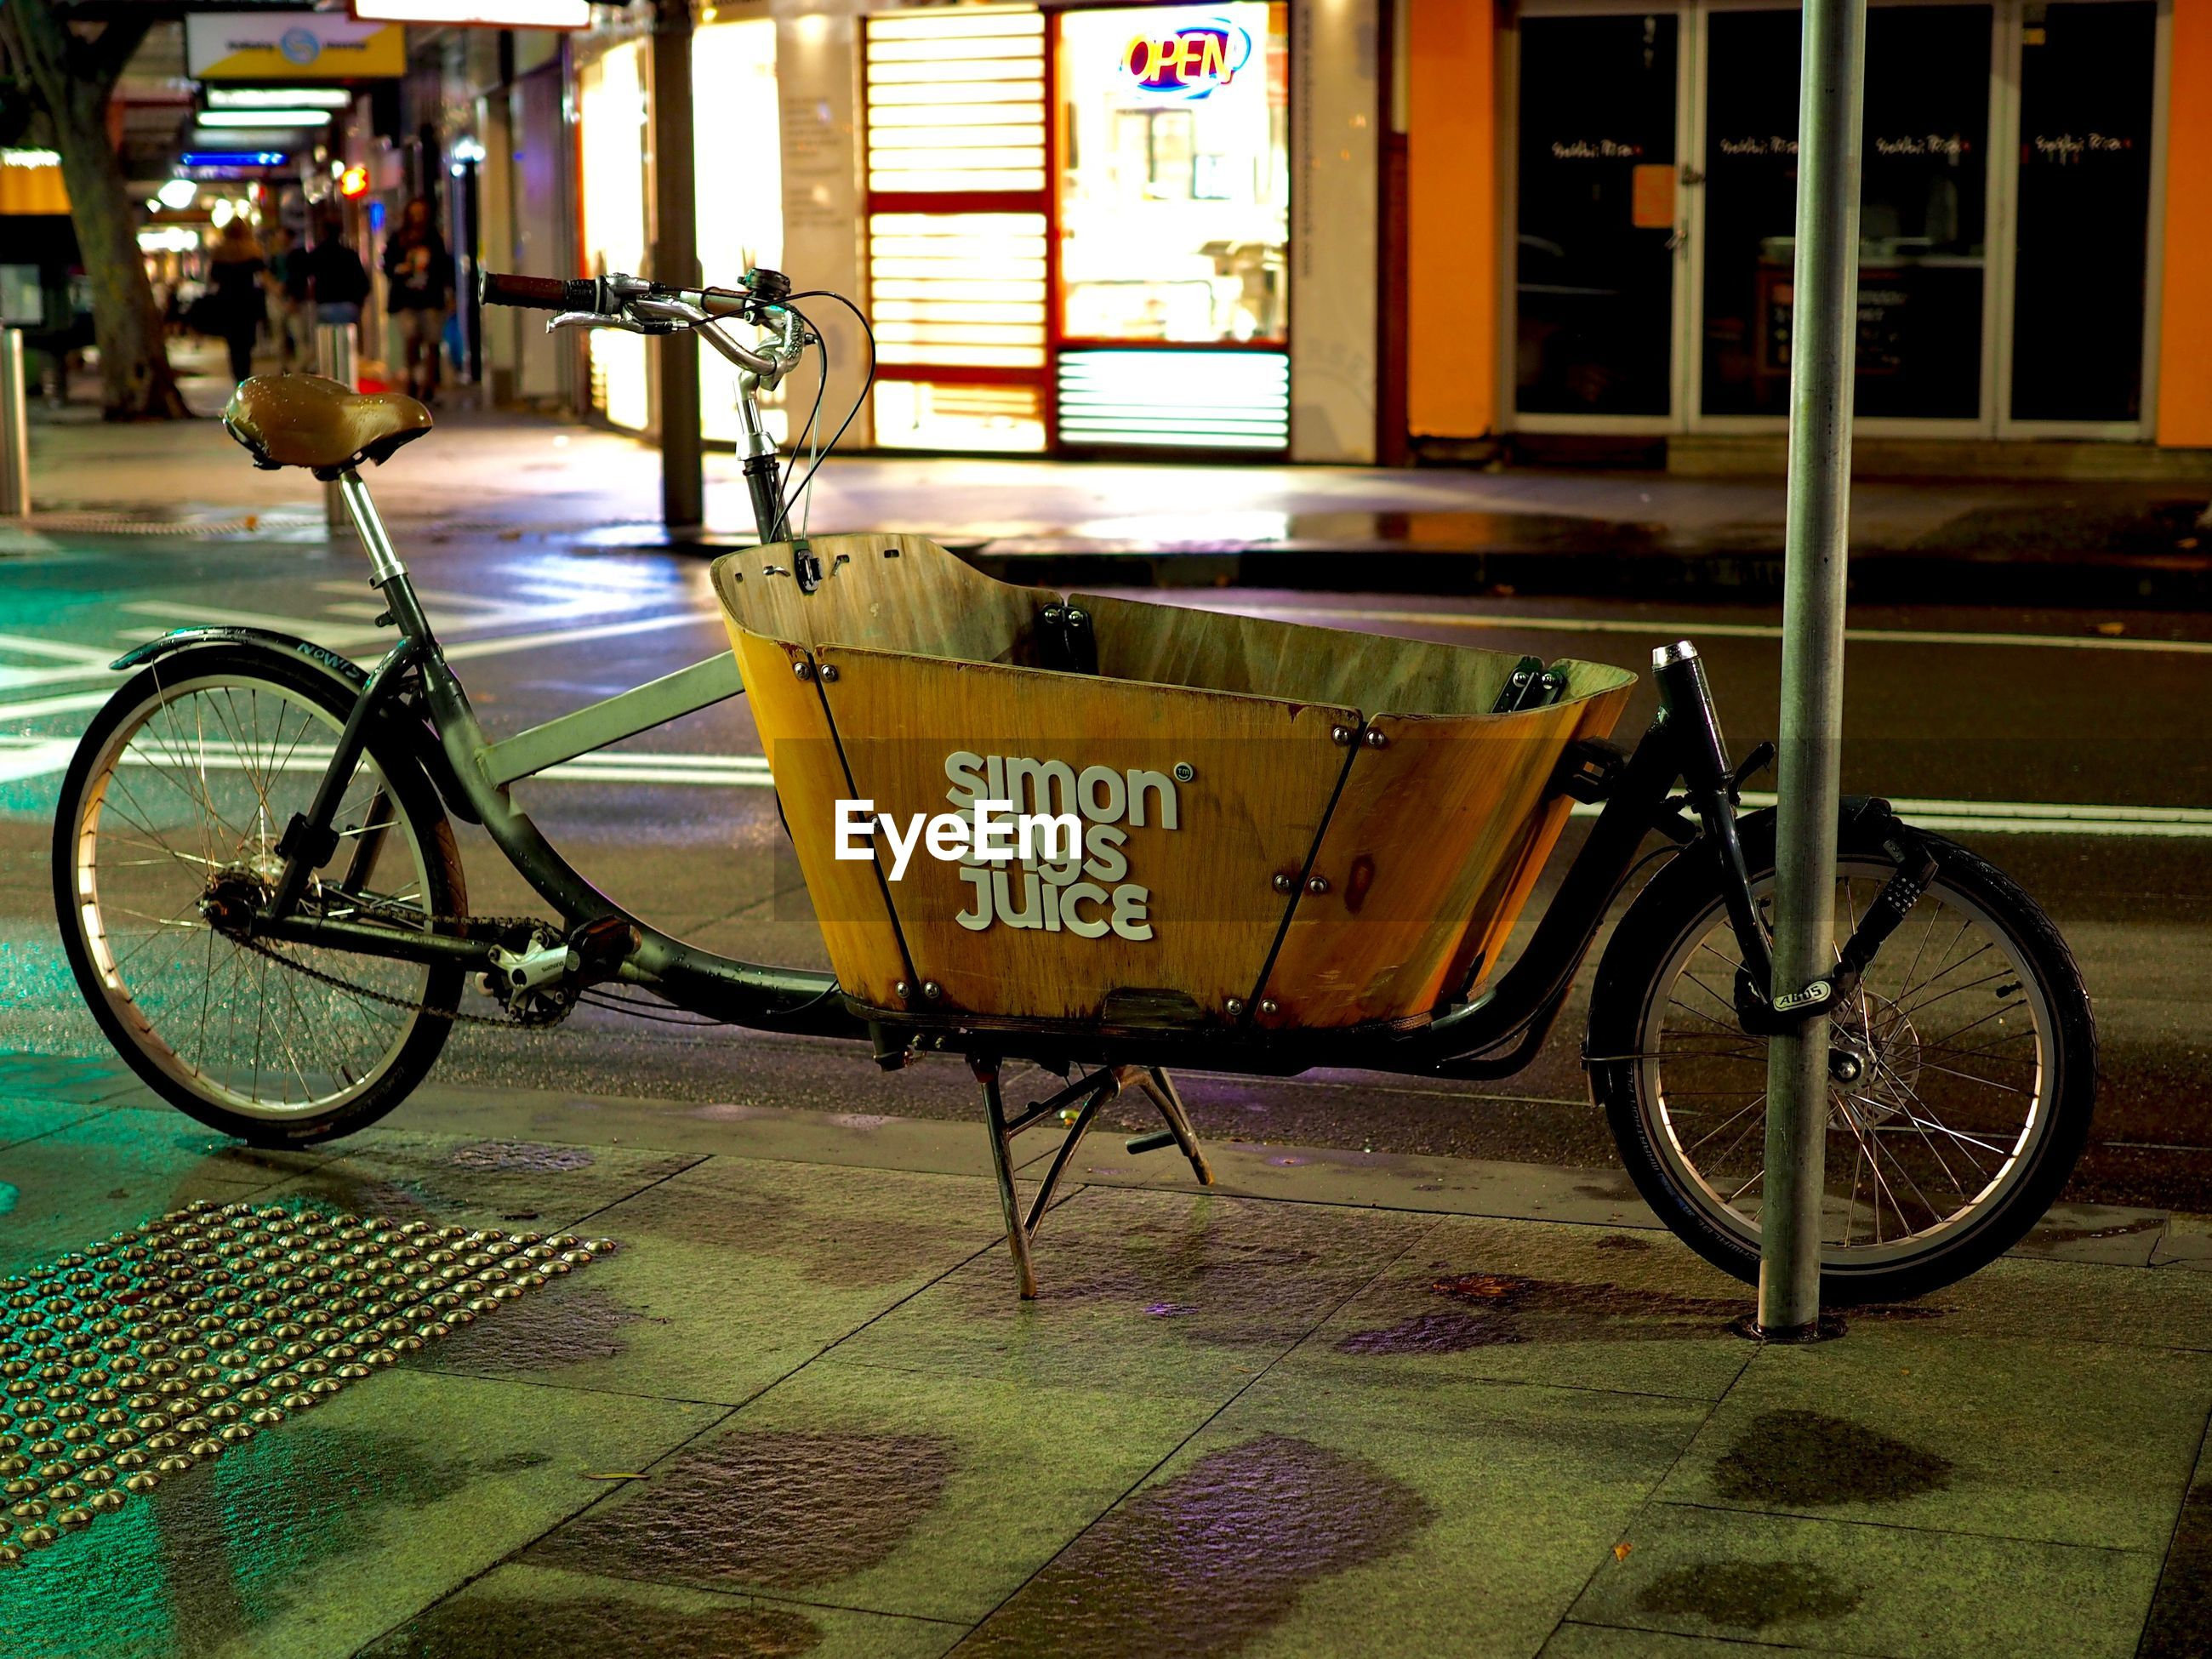 transportation, mode of transport, bicycle, text, street, land vehicle, architecture, stationary, outdoors, built structure, city, day, building exterior, no people